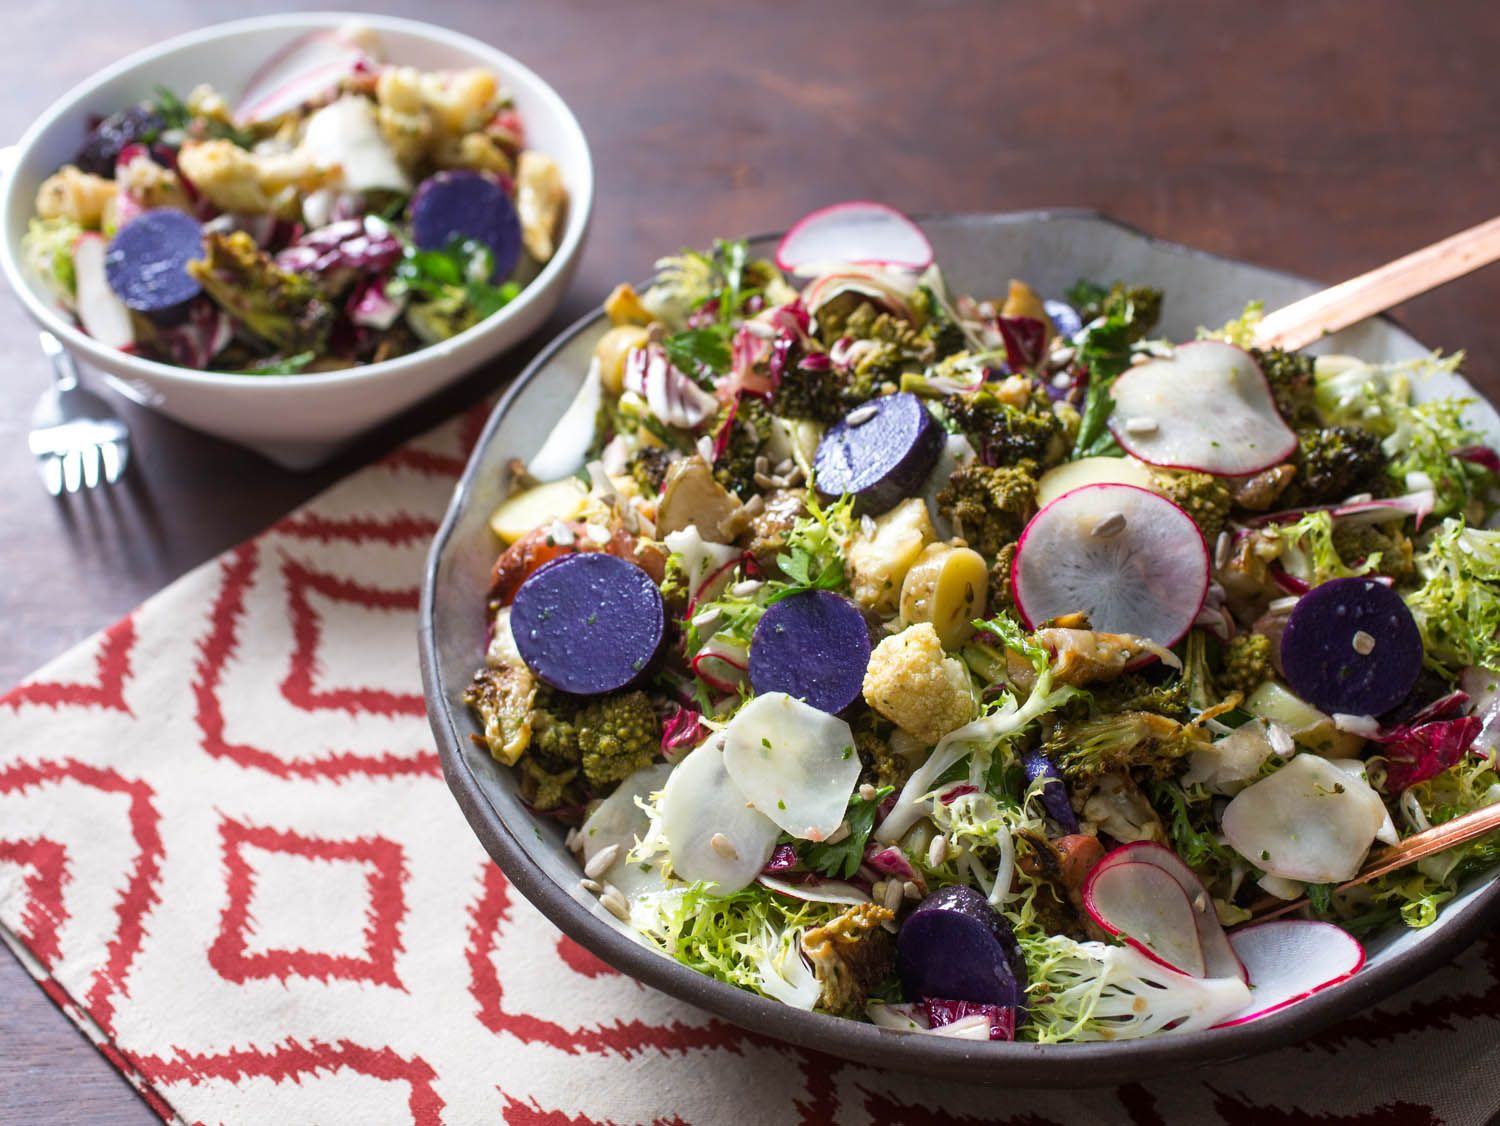 Fall Harvest Salad With Roasted Brassicas, Fingerlings, and Radishes Recipe | Serious Eats